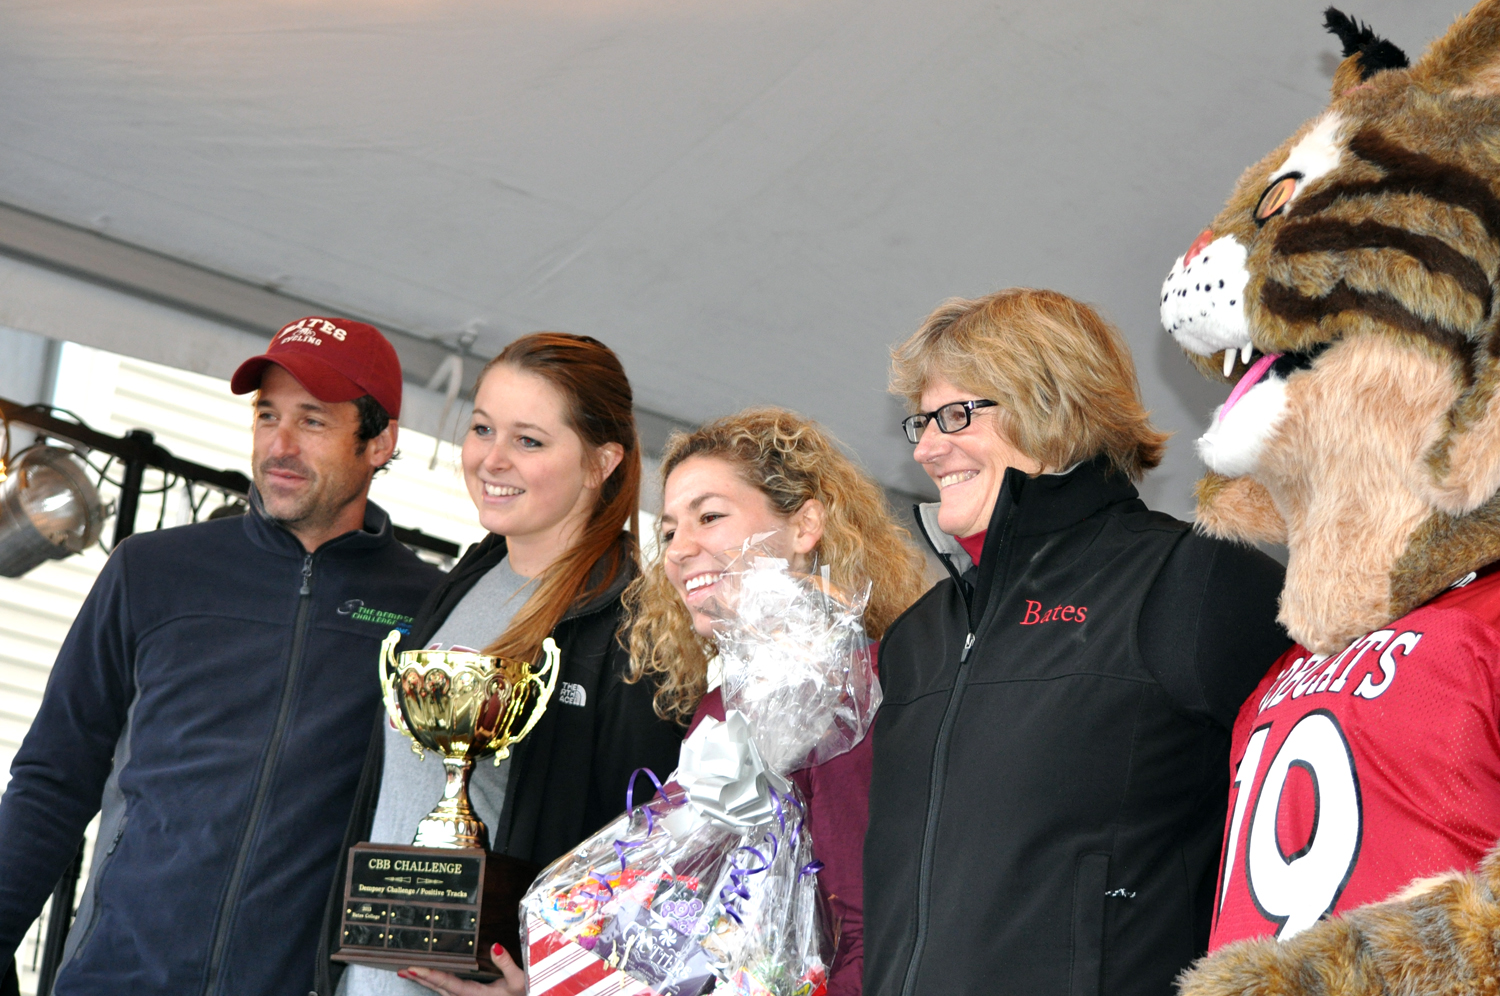 Patrick Dempsey presents the CBB Challenge College Cup to, from left, organizer Hillary Throckmorton '15, Abby Zwetchkenbaum '15 (one of two top Bates fundraisers, along with Julia Gordon '15), President Clayton Spencer and the Bates Bobcat on Oct. 13 during a ceremony in Lewiston's Simard-Payne Park. (Meg Kimmel/Bates College)